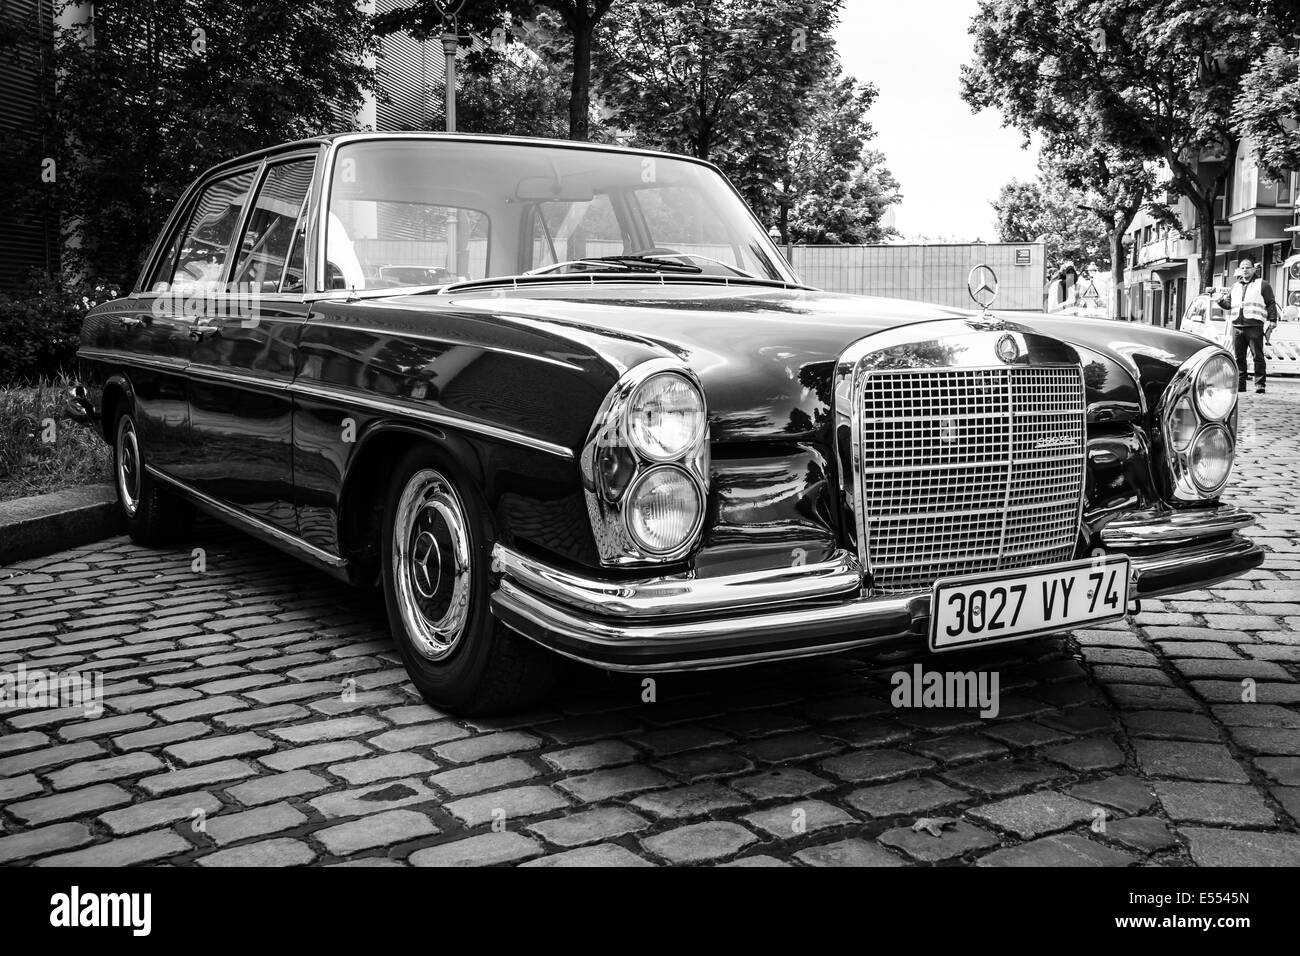 The luxury car mercedes benz 300sel w108 w109 black and for Mercedes benz stock